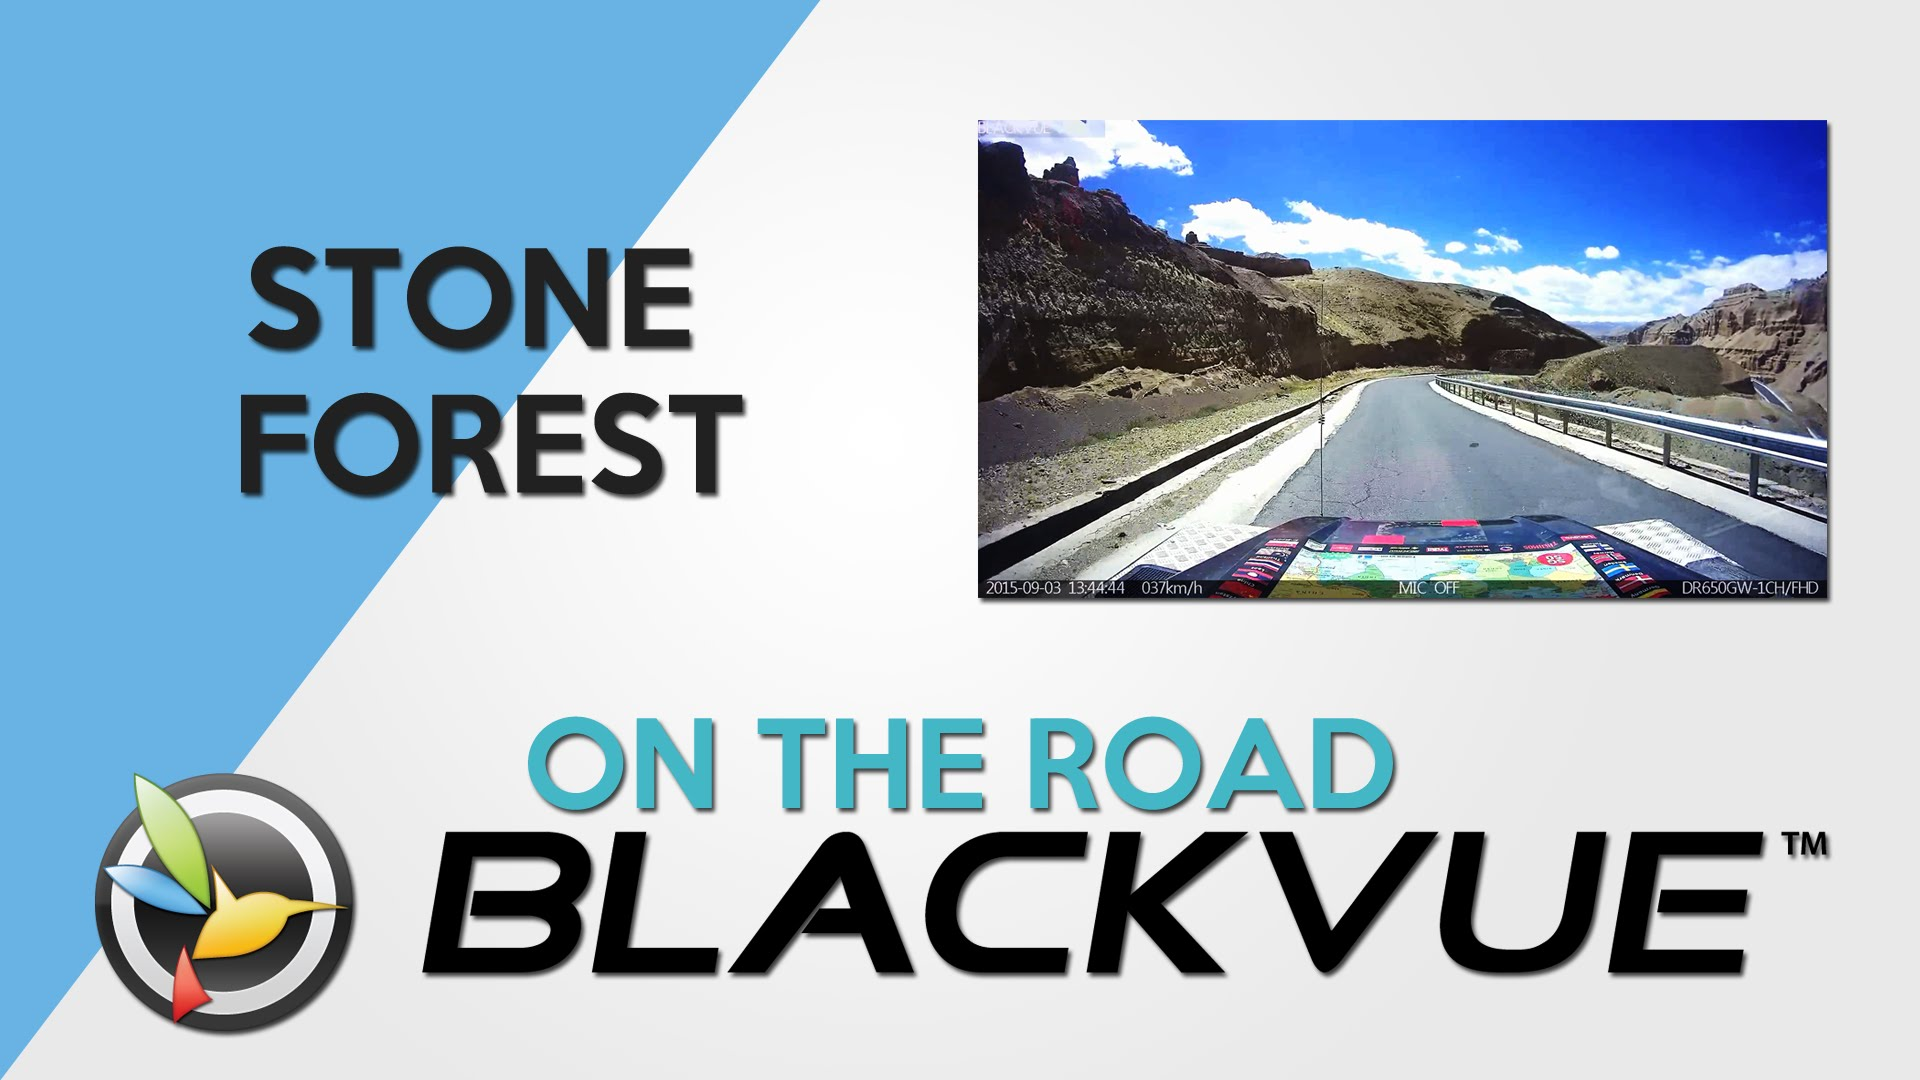 BLACKVUE ON THE ROAD: Stone Forest at the Roof of the World